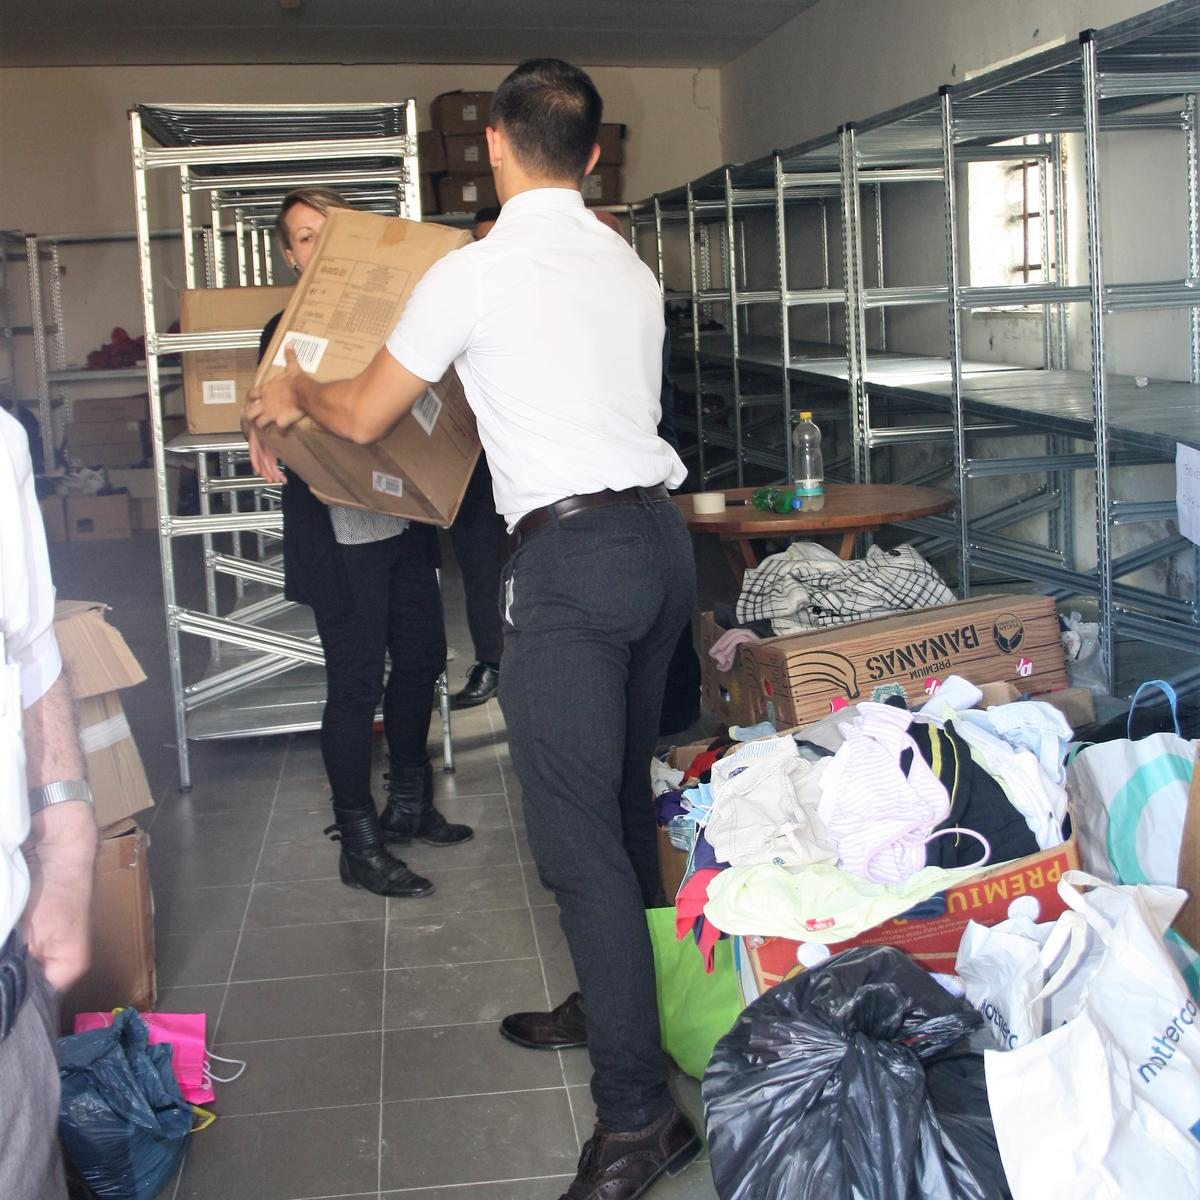 LDS missionaries and church members help organize and store donations in a camp warehouse.